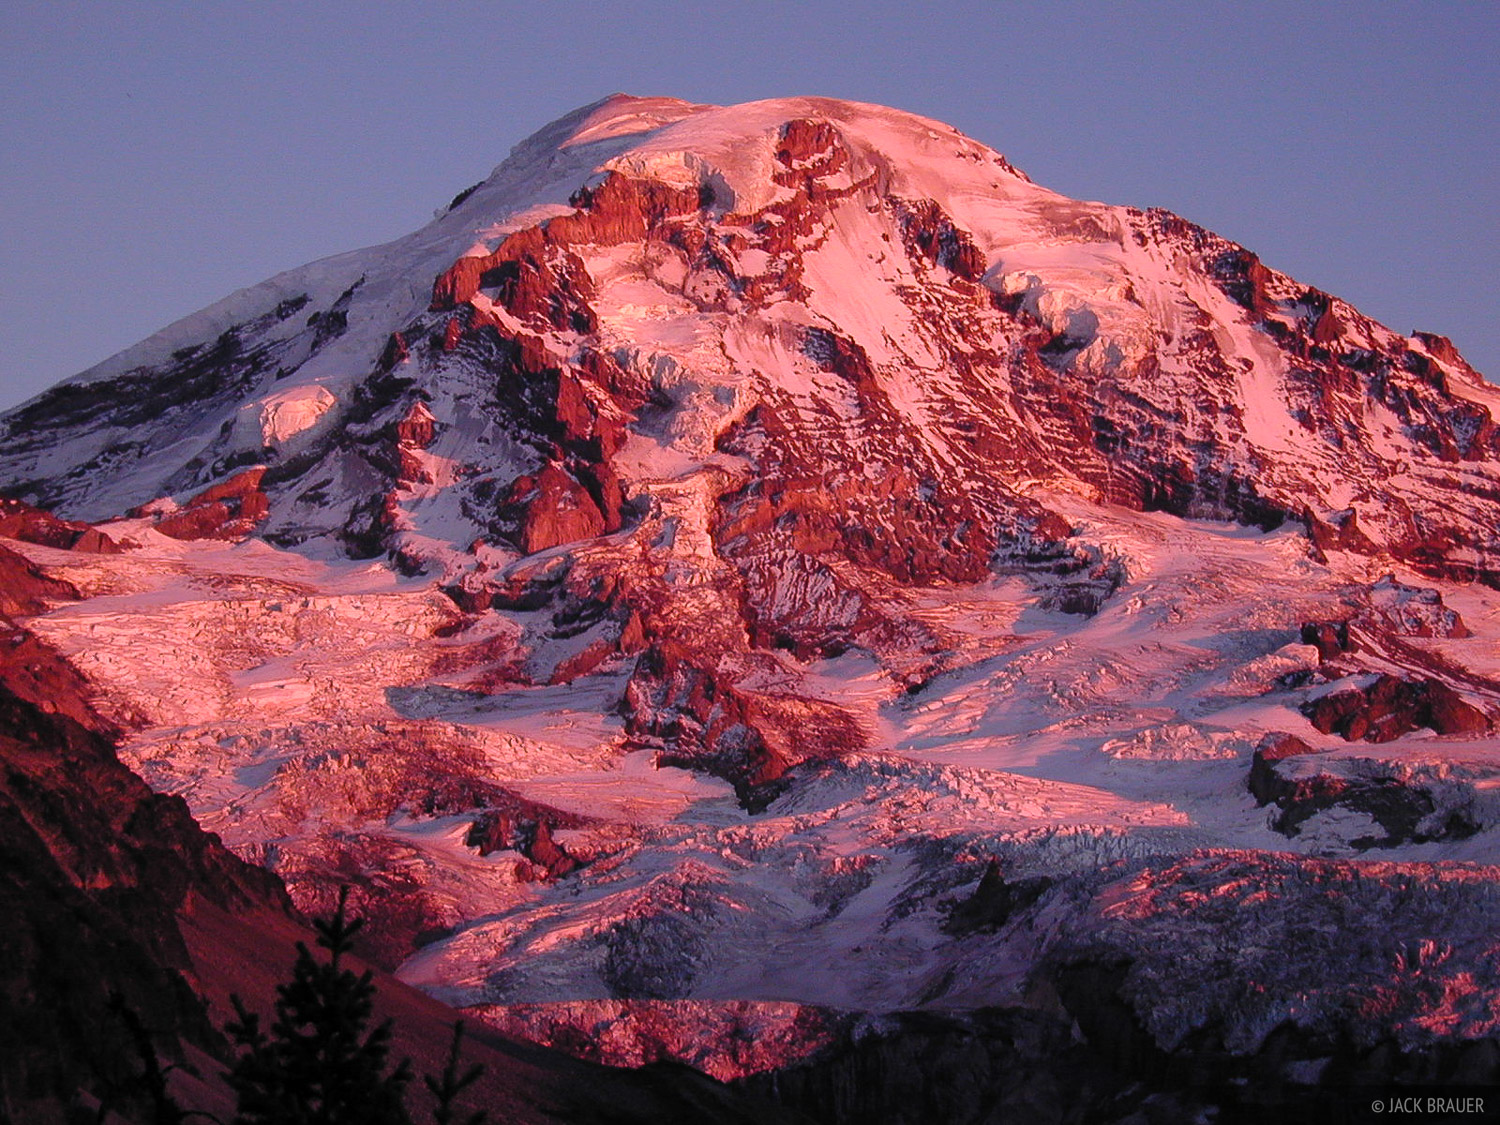 Mt. Rainier, alpenglow, Washington, Cascades, rugged, photo